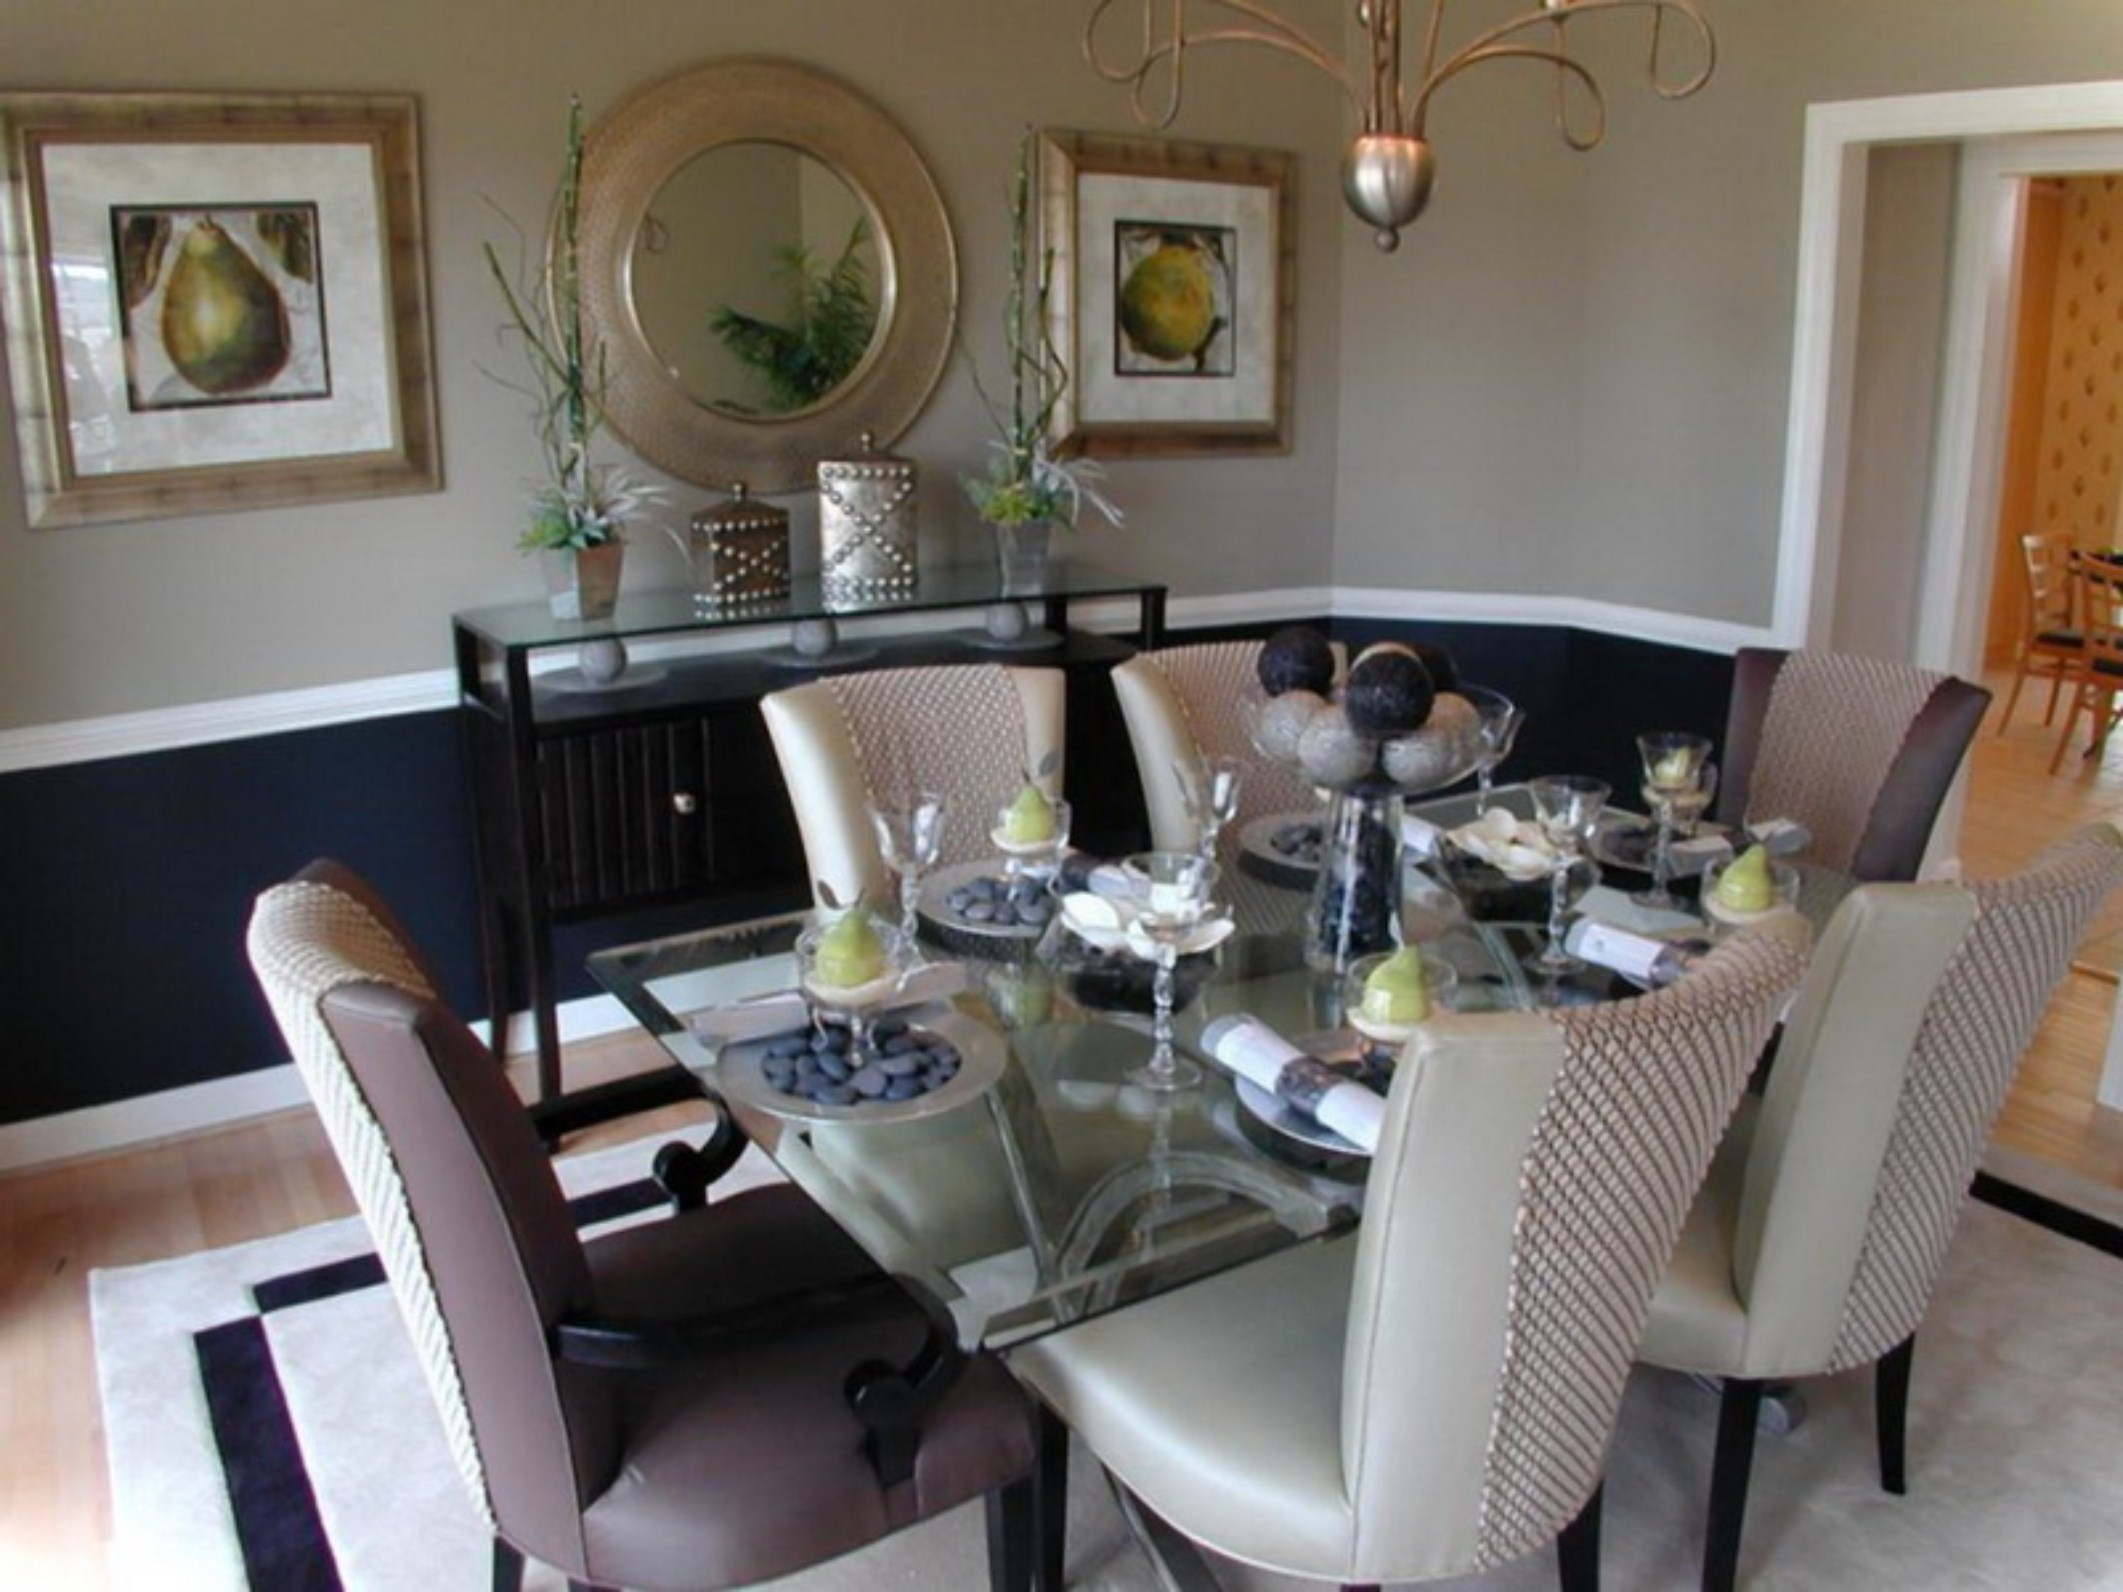 Best Formal Dining Room Sets For Home Design: Chic Formal Dining Room Sets  With Buffet